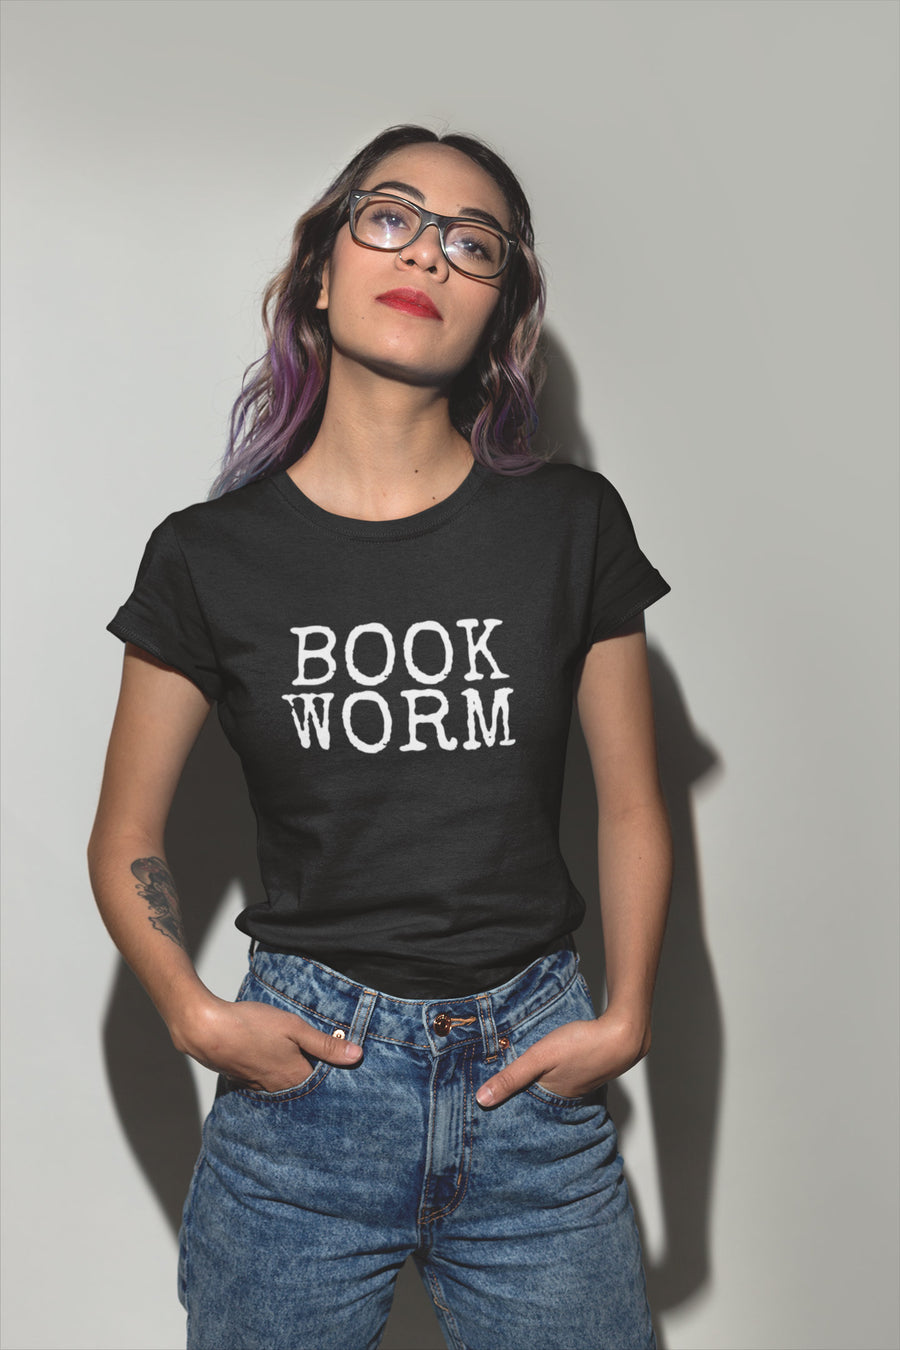 Bookworm Short-Sleeve Unisex T-Shirt Reading Lover - Book Addict Shirt